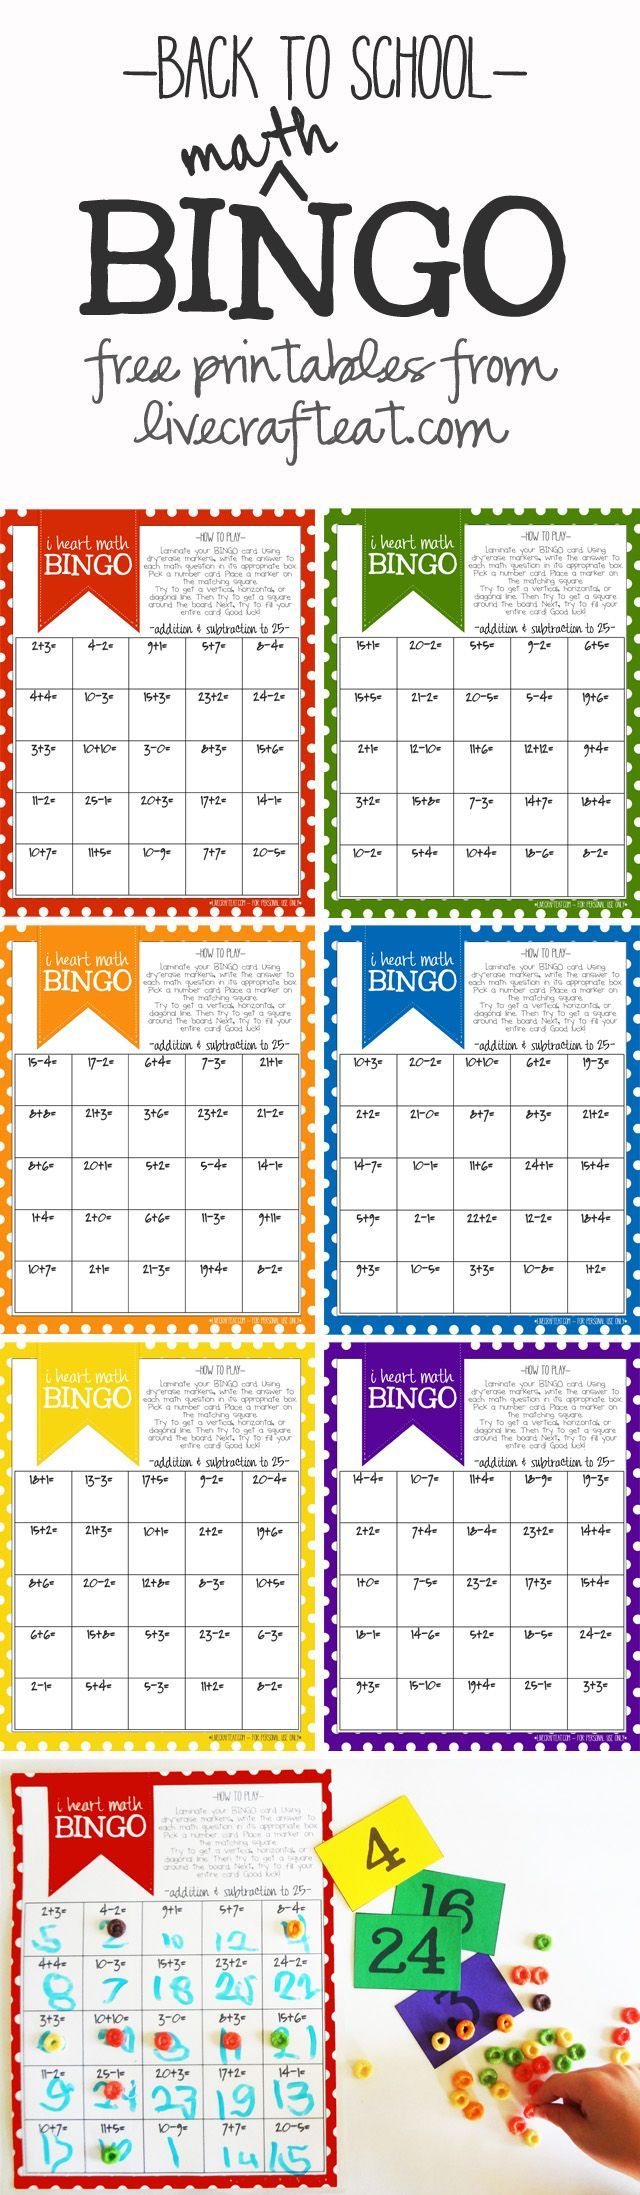 a fun back-to-school addition & subtraction bingo game for kids. 6 printable bingo cards with math questions equaling 1-25. free printables!   www.livecrafteat.com #kids #homeschool #printables